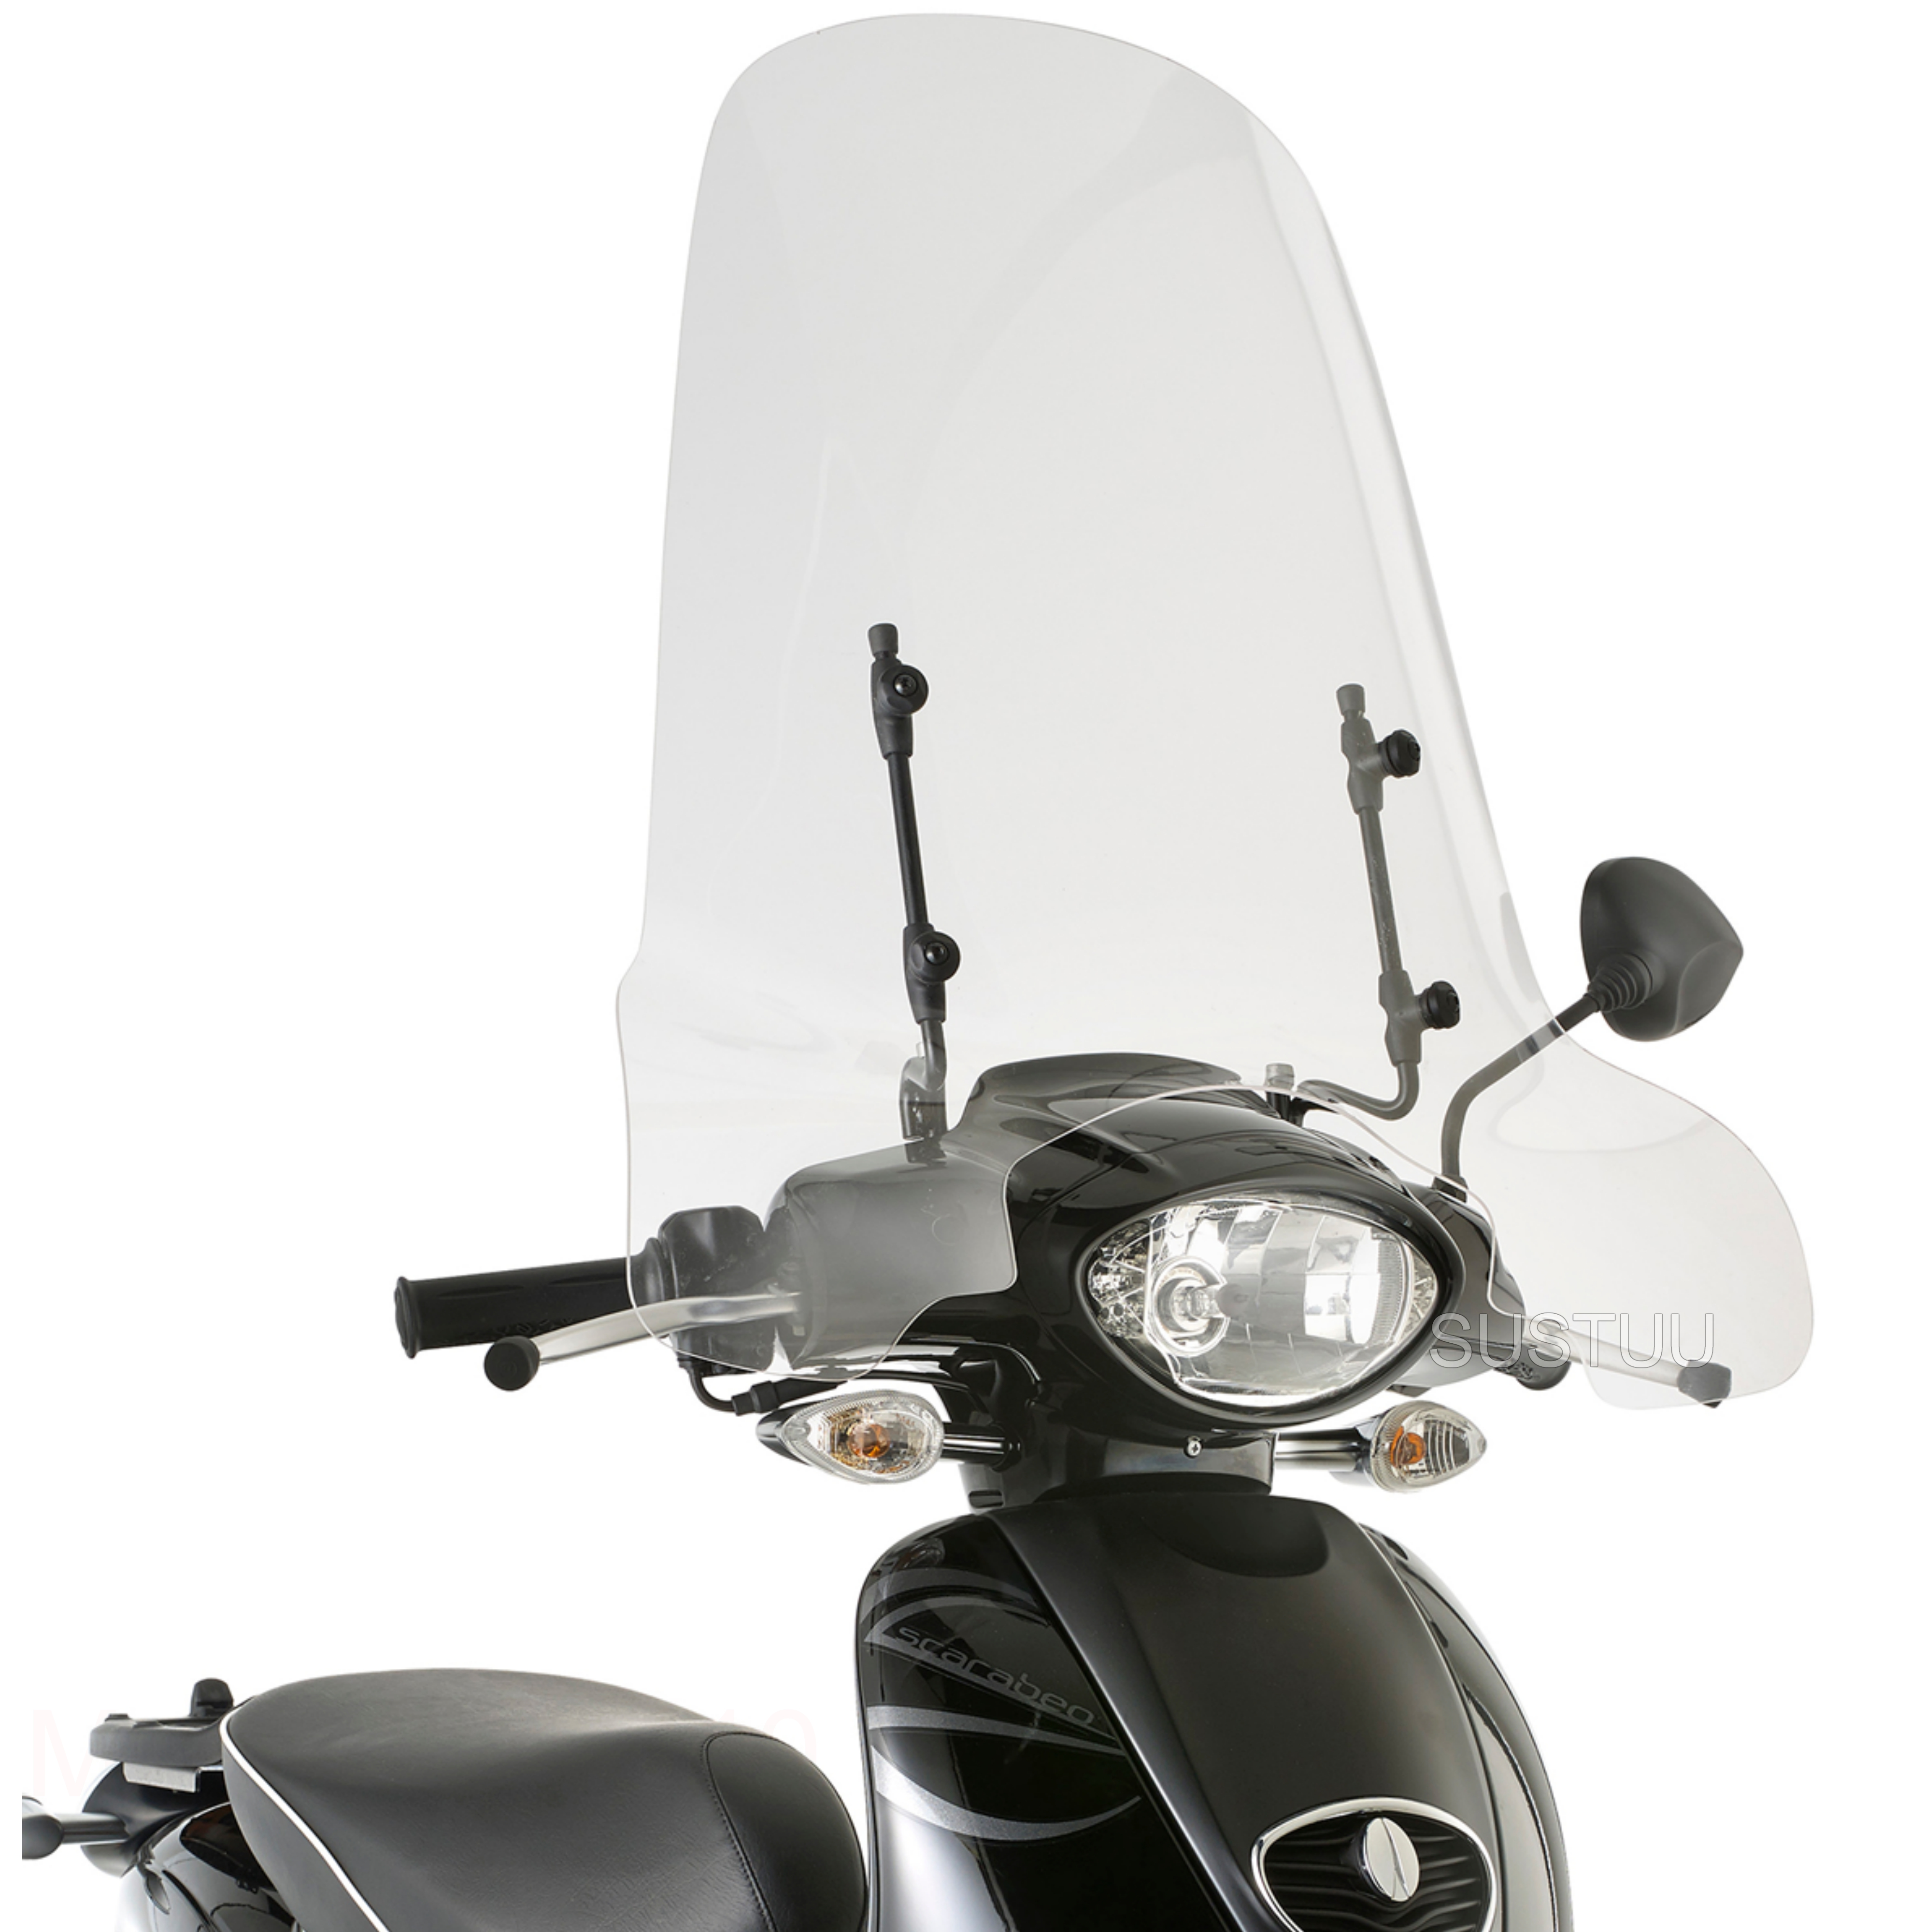 GIVI 6704A|Clear Windscreen|Scooter Front Glass|56x66cm|For Aprilia Scarabeo 50